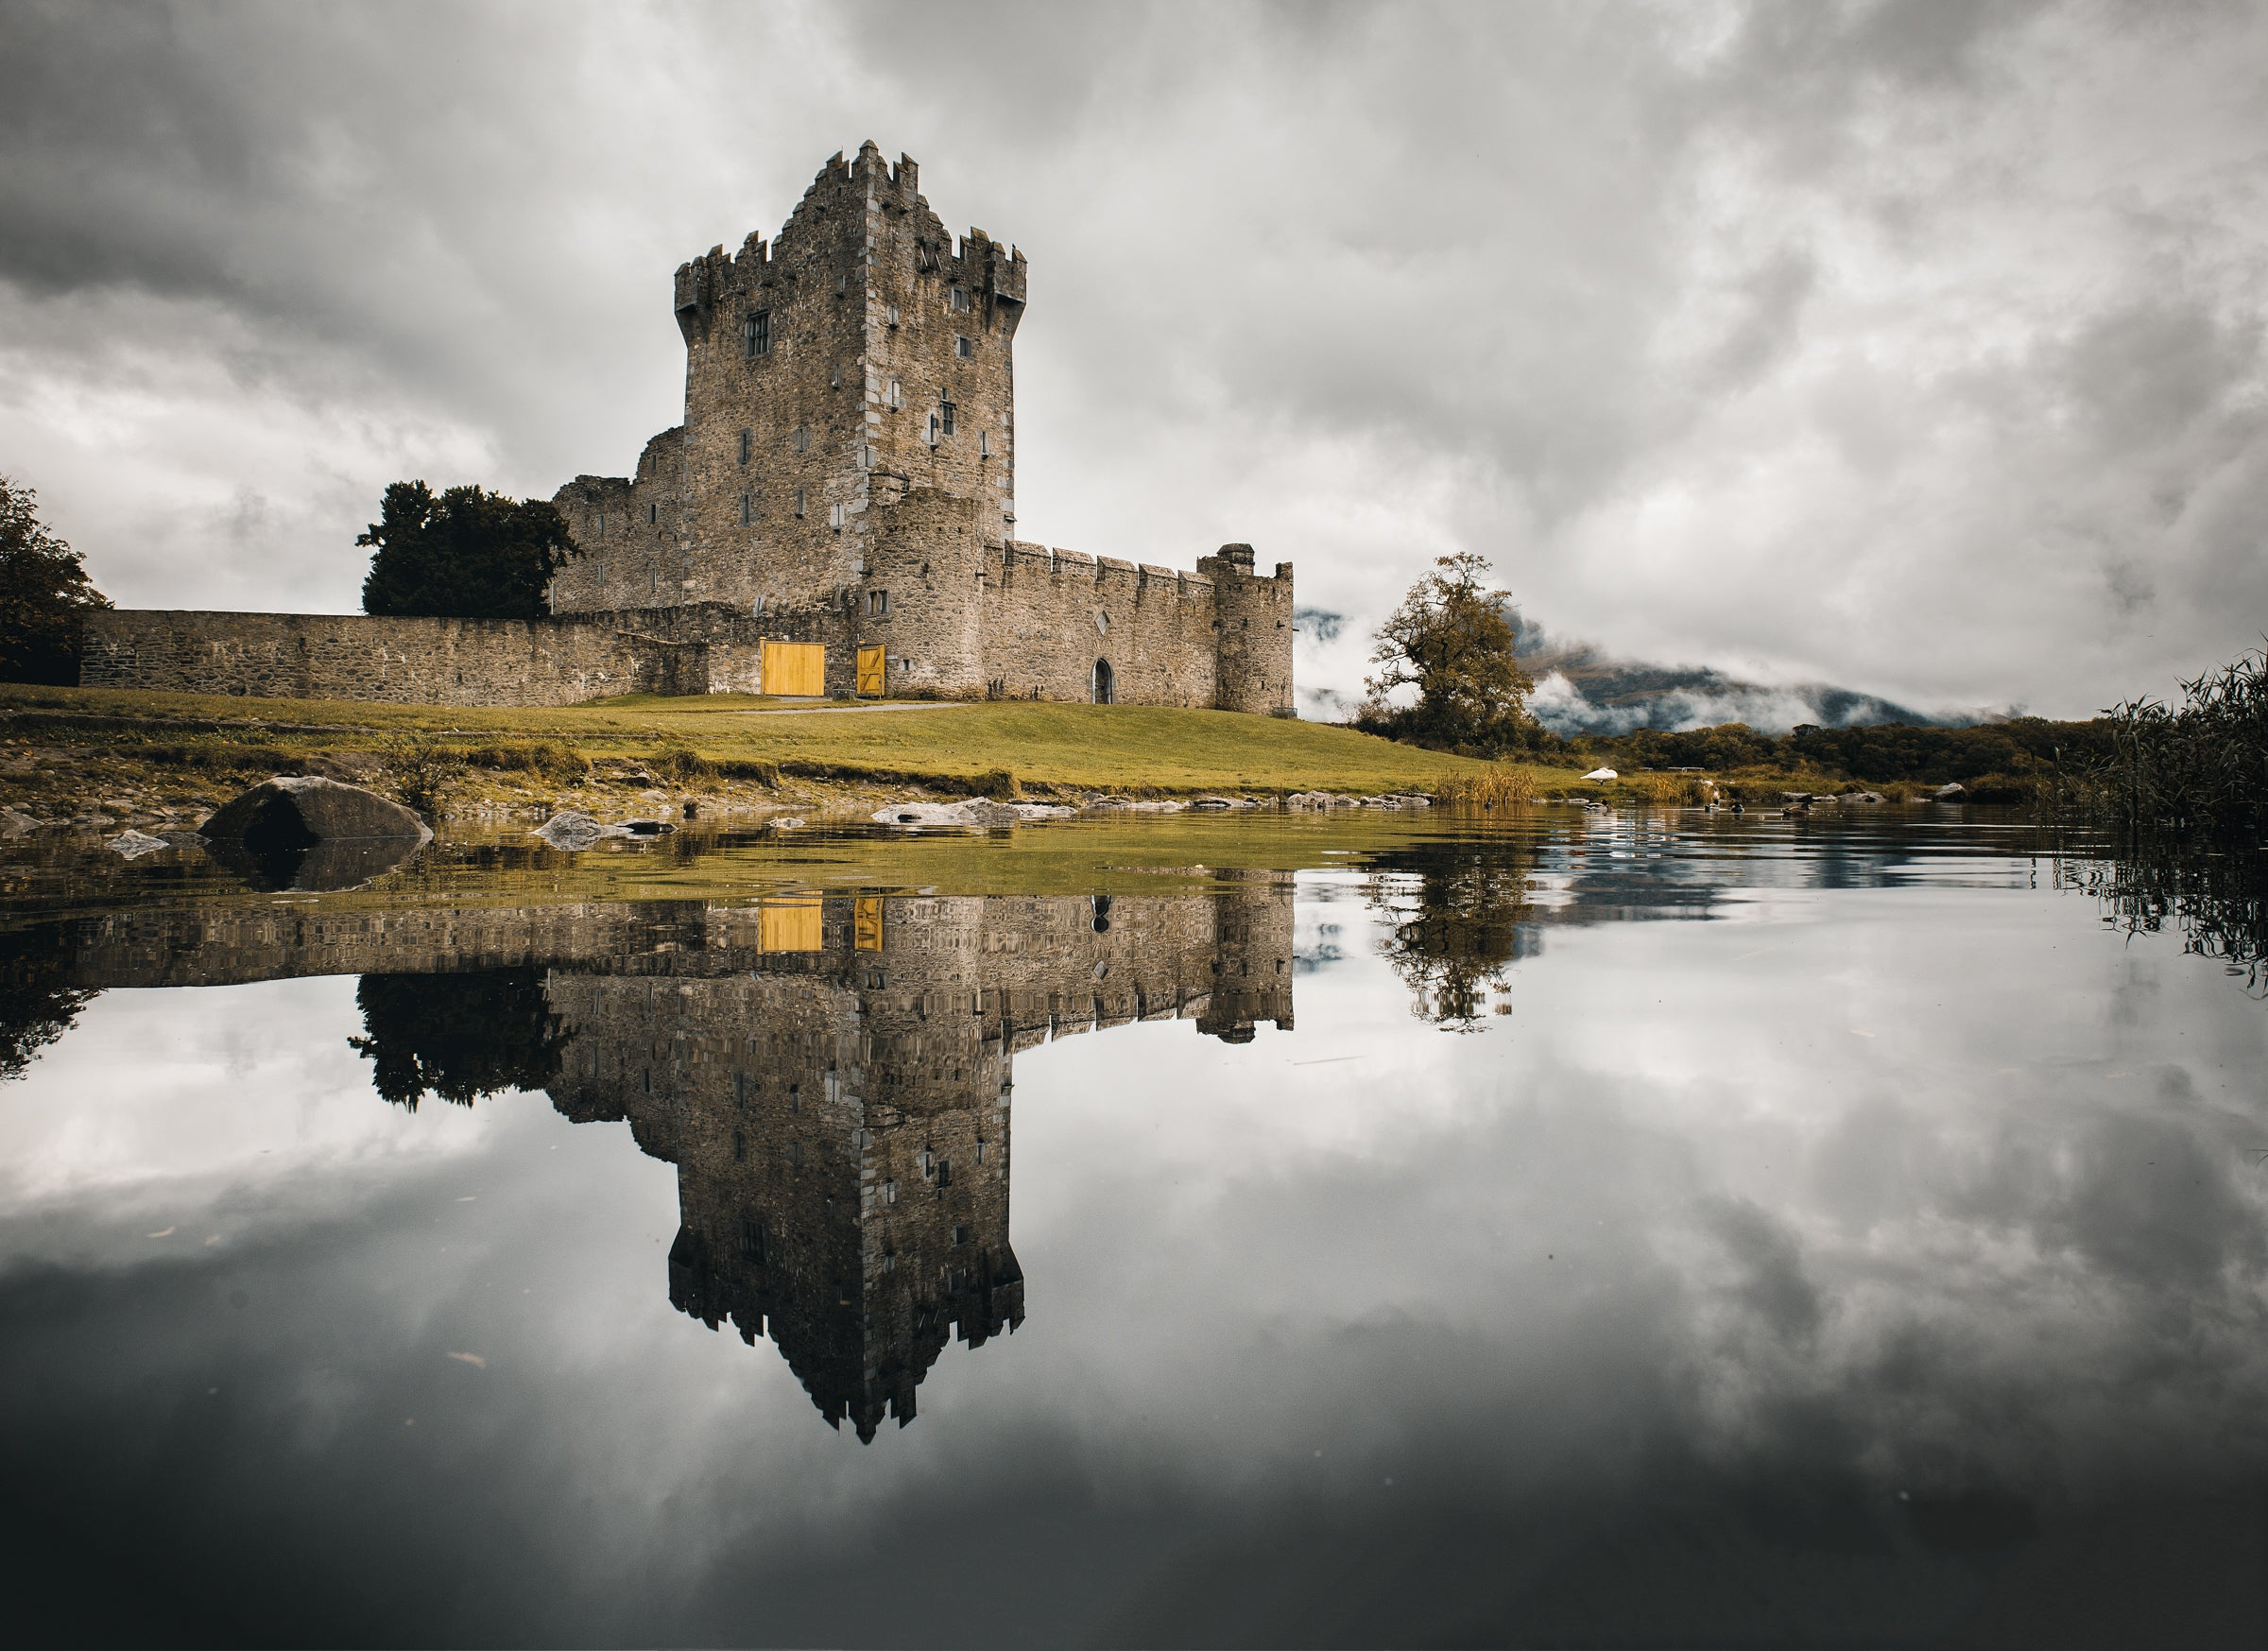 Castle in a reflections